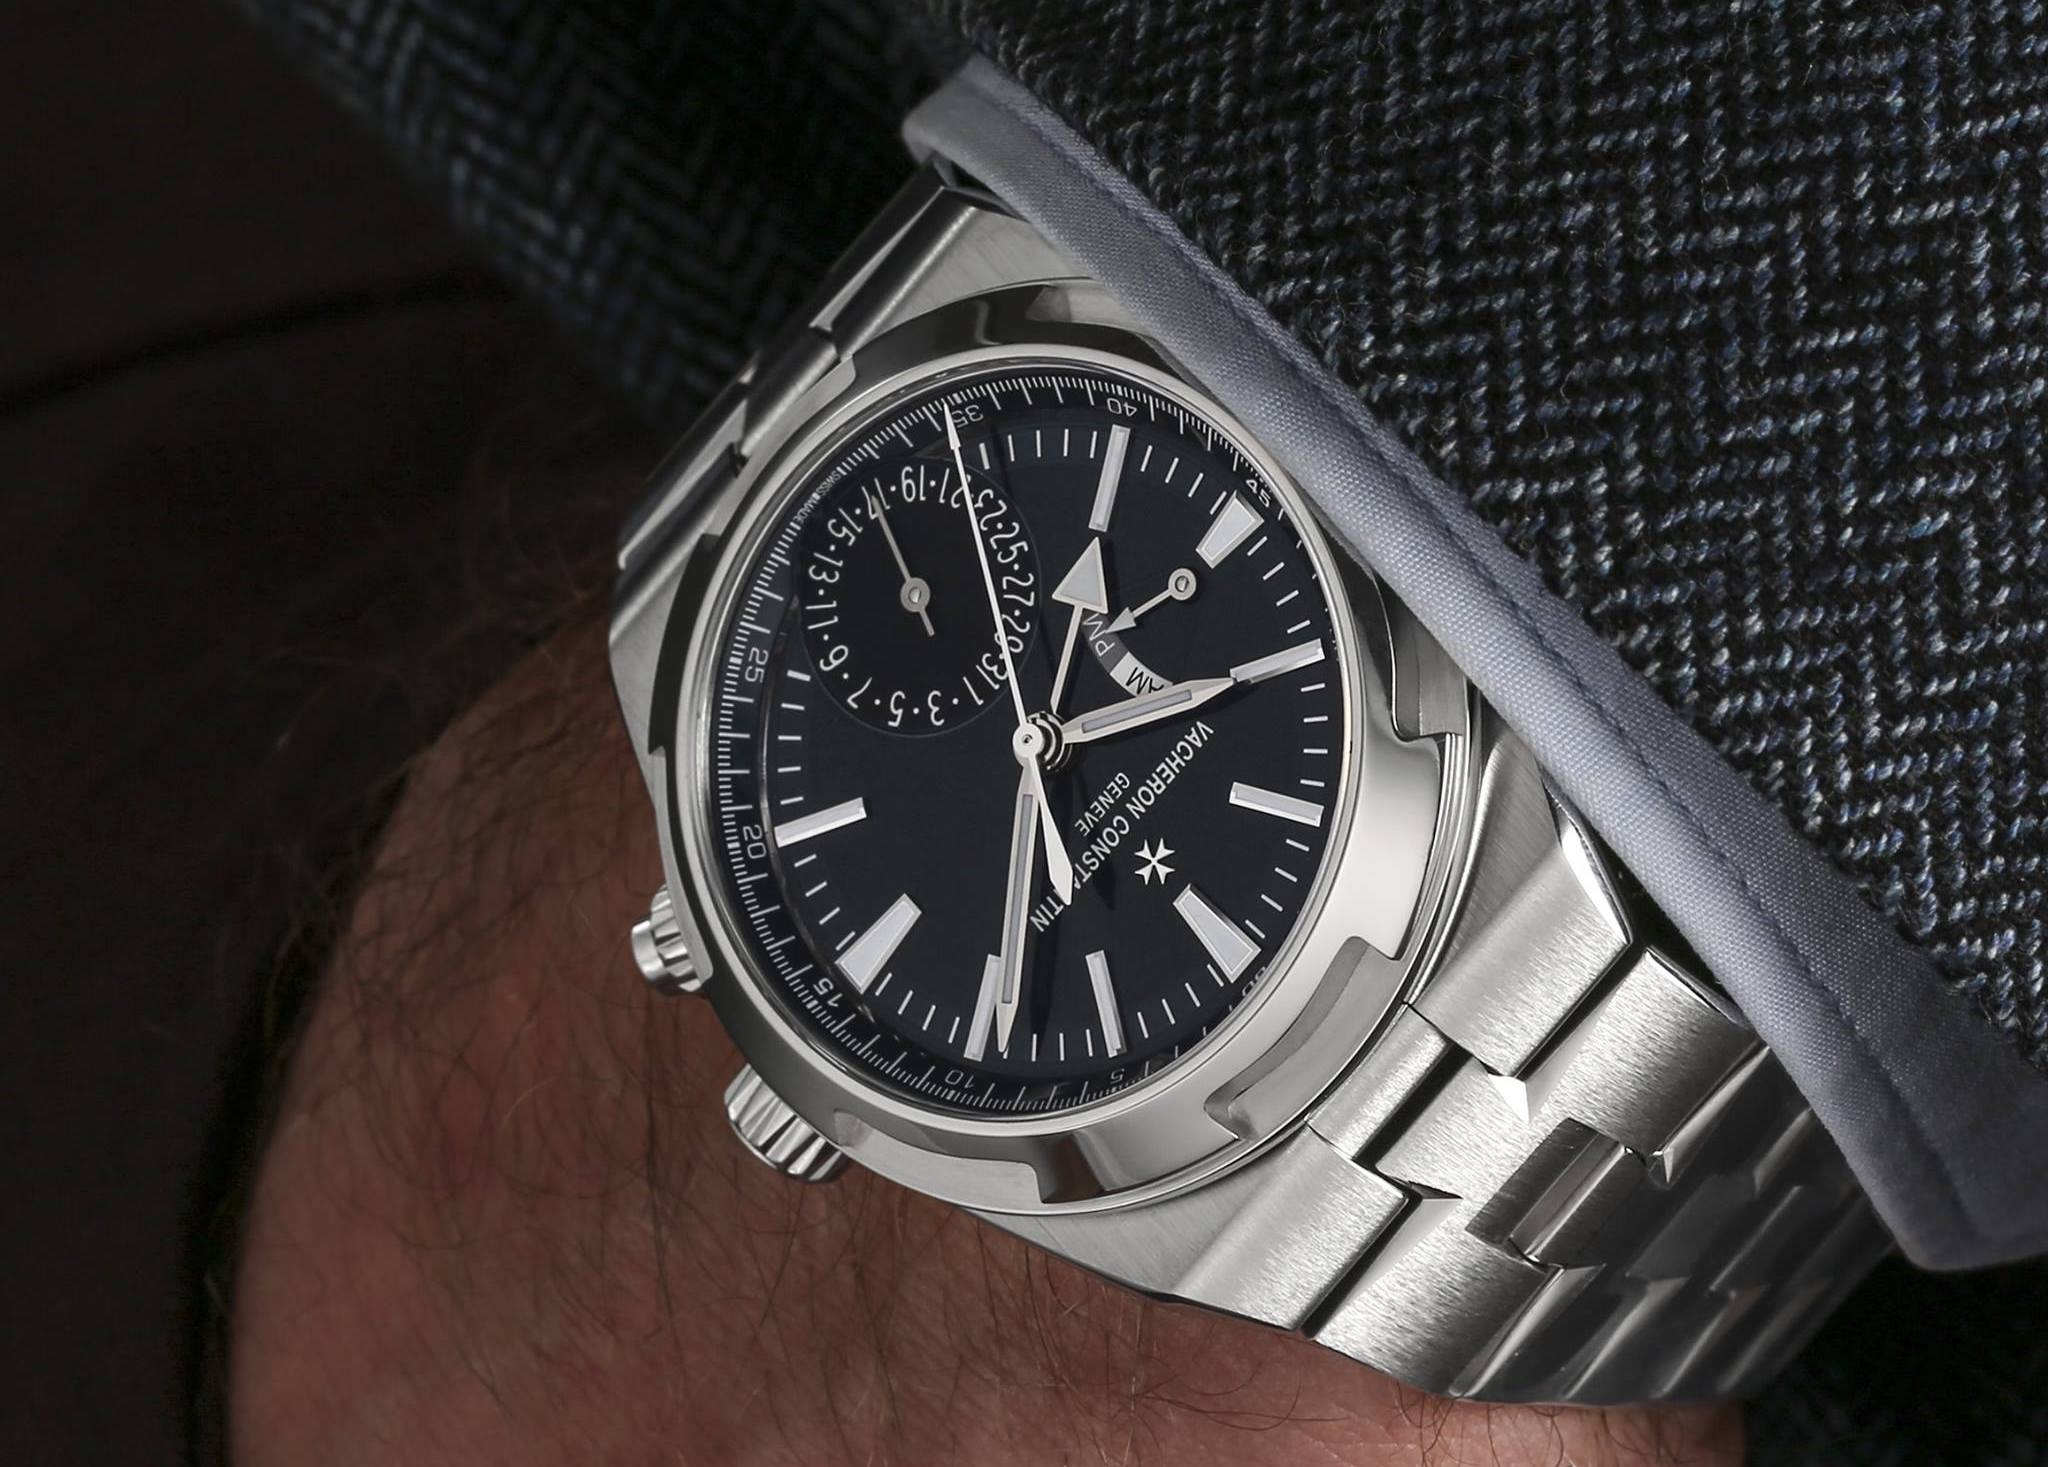 Buying Guide - 5 Luxury-Sports Watches of 2017